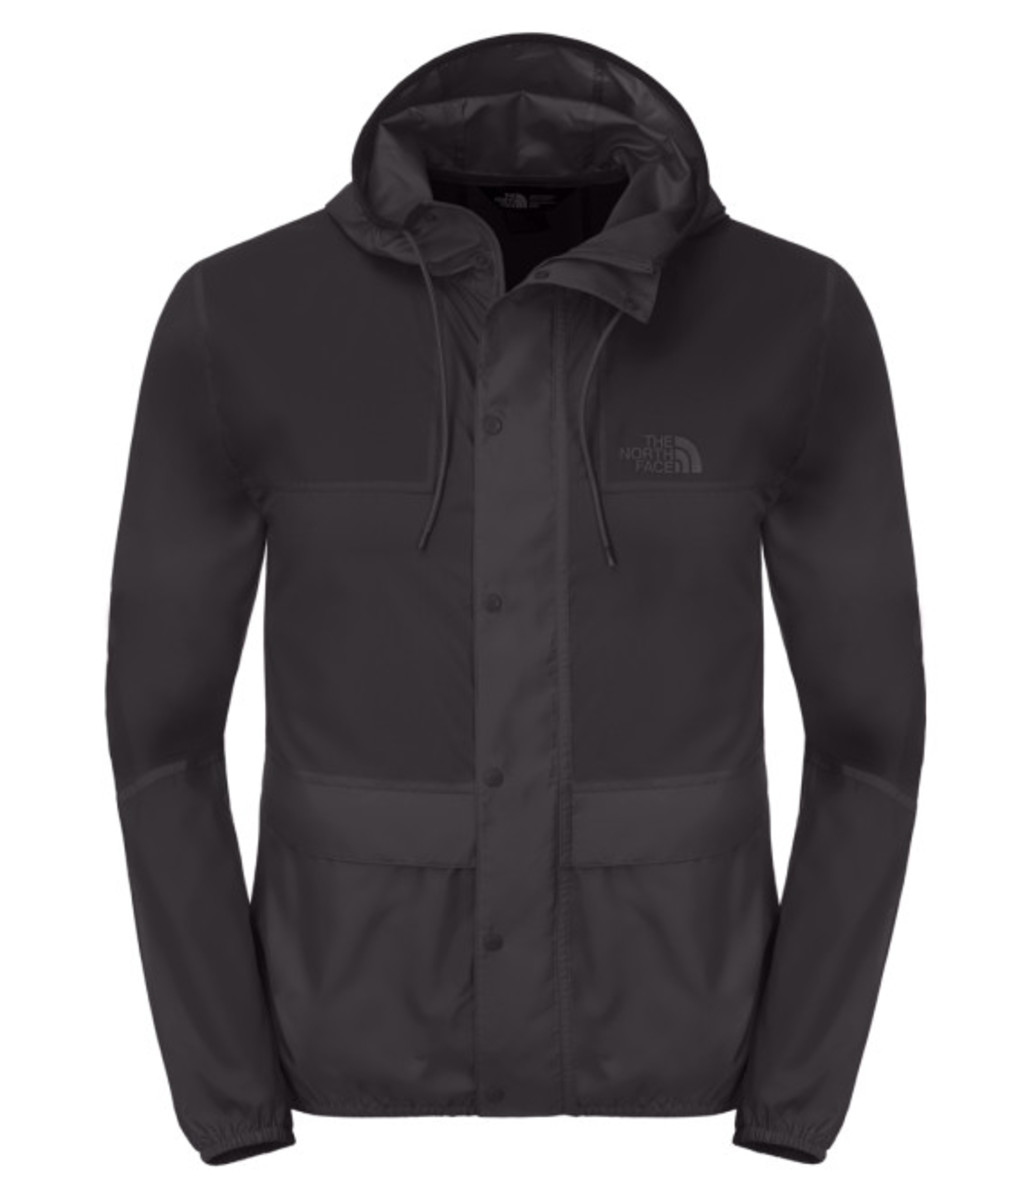 the-north-face-mountain-jacket-12